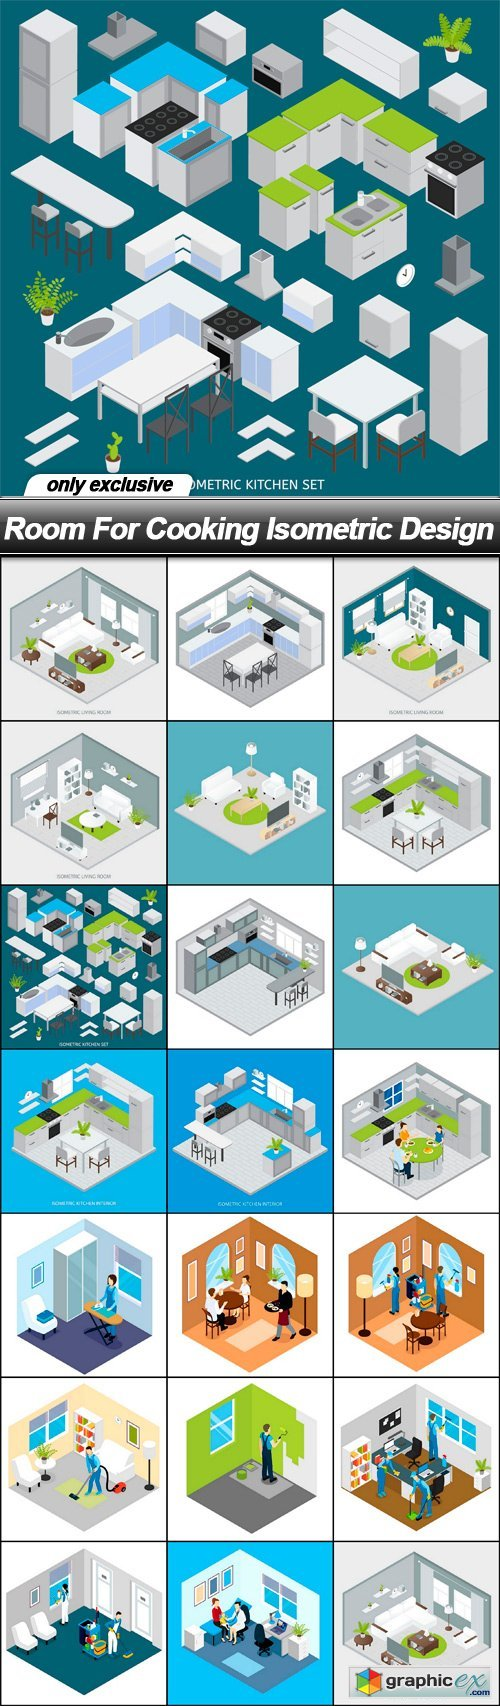 Room For Cooking Isometric Design - 20 EPS